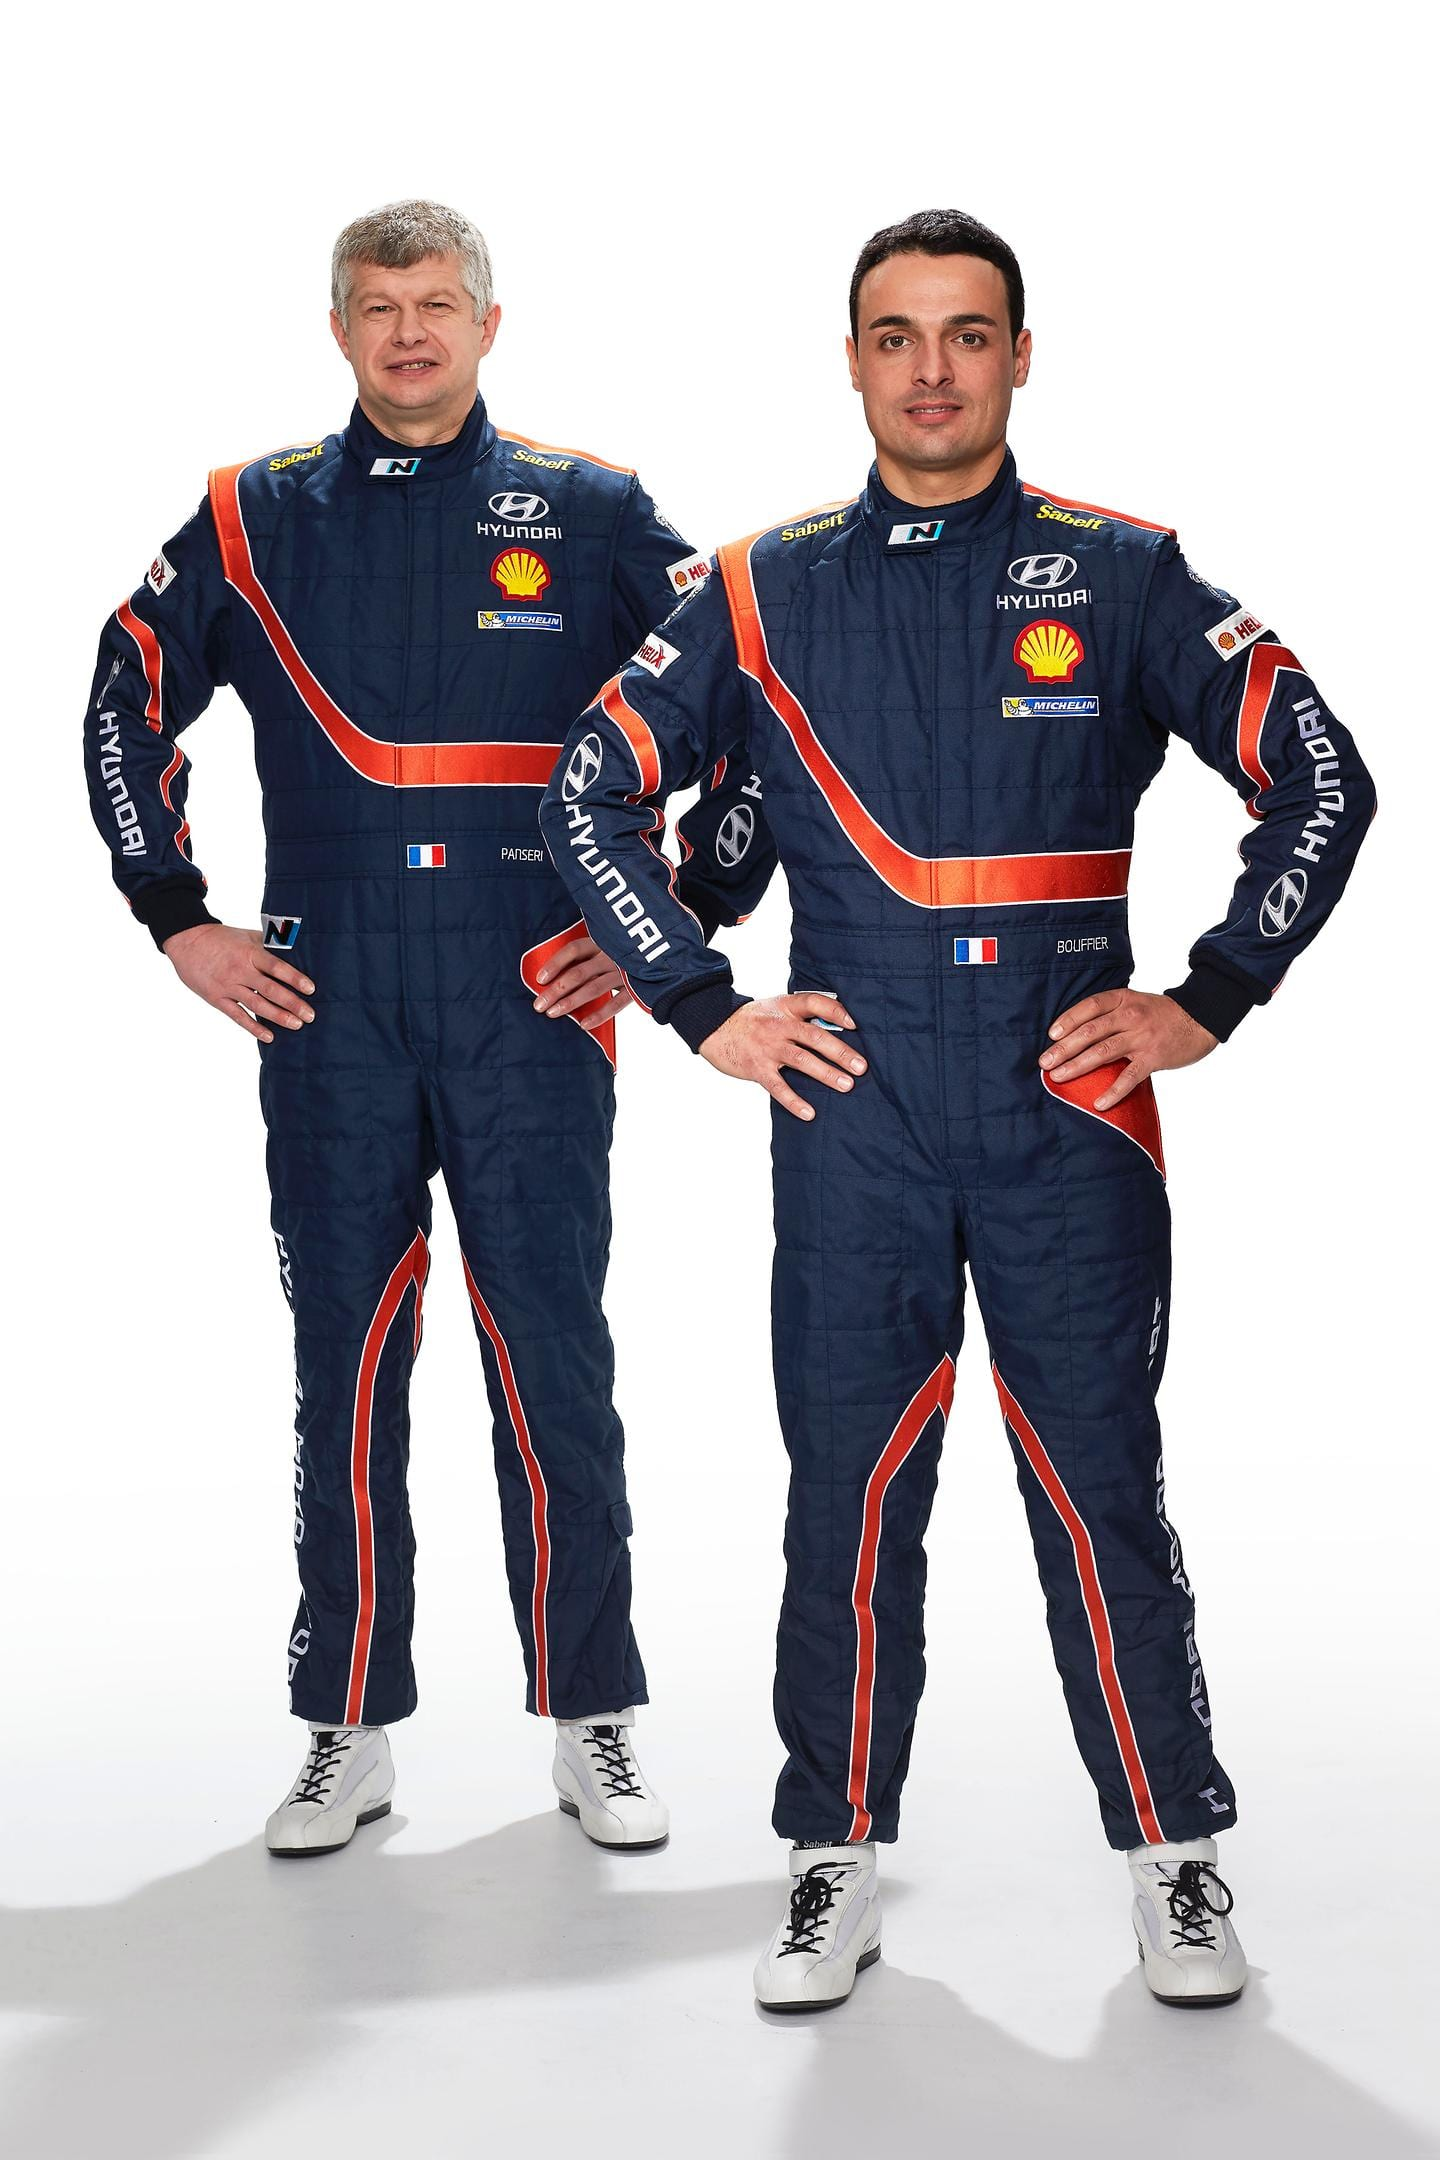 Hyundai Motor Announces Brian Bouffier as 2014 Test Driver